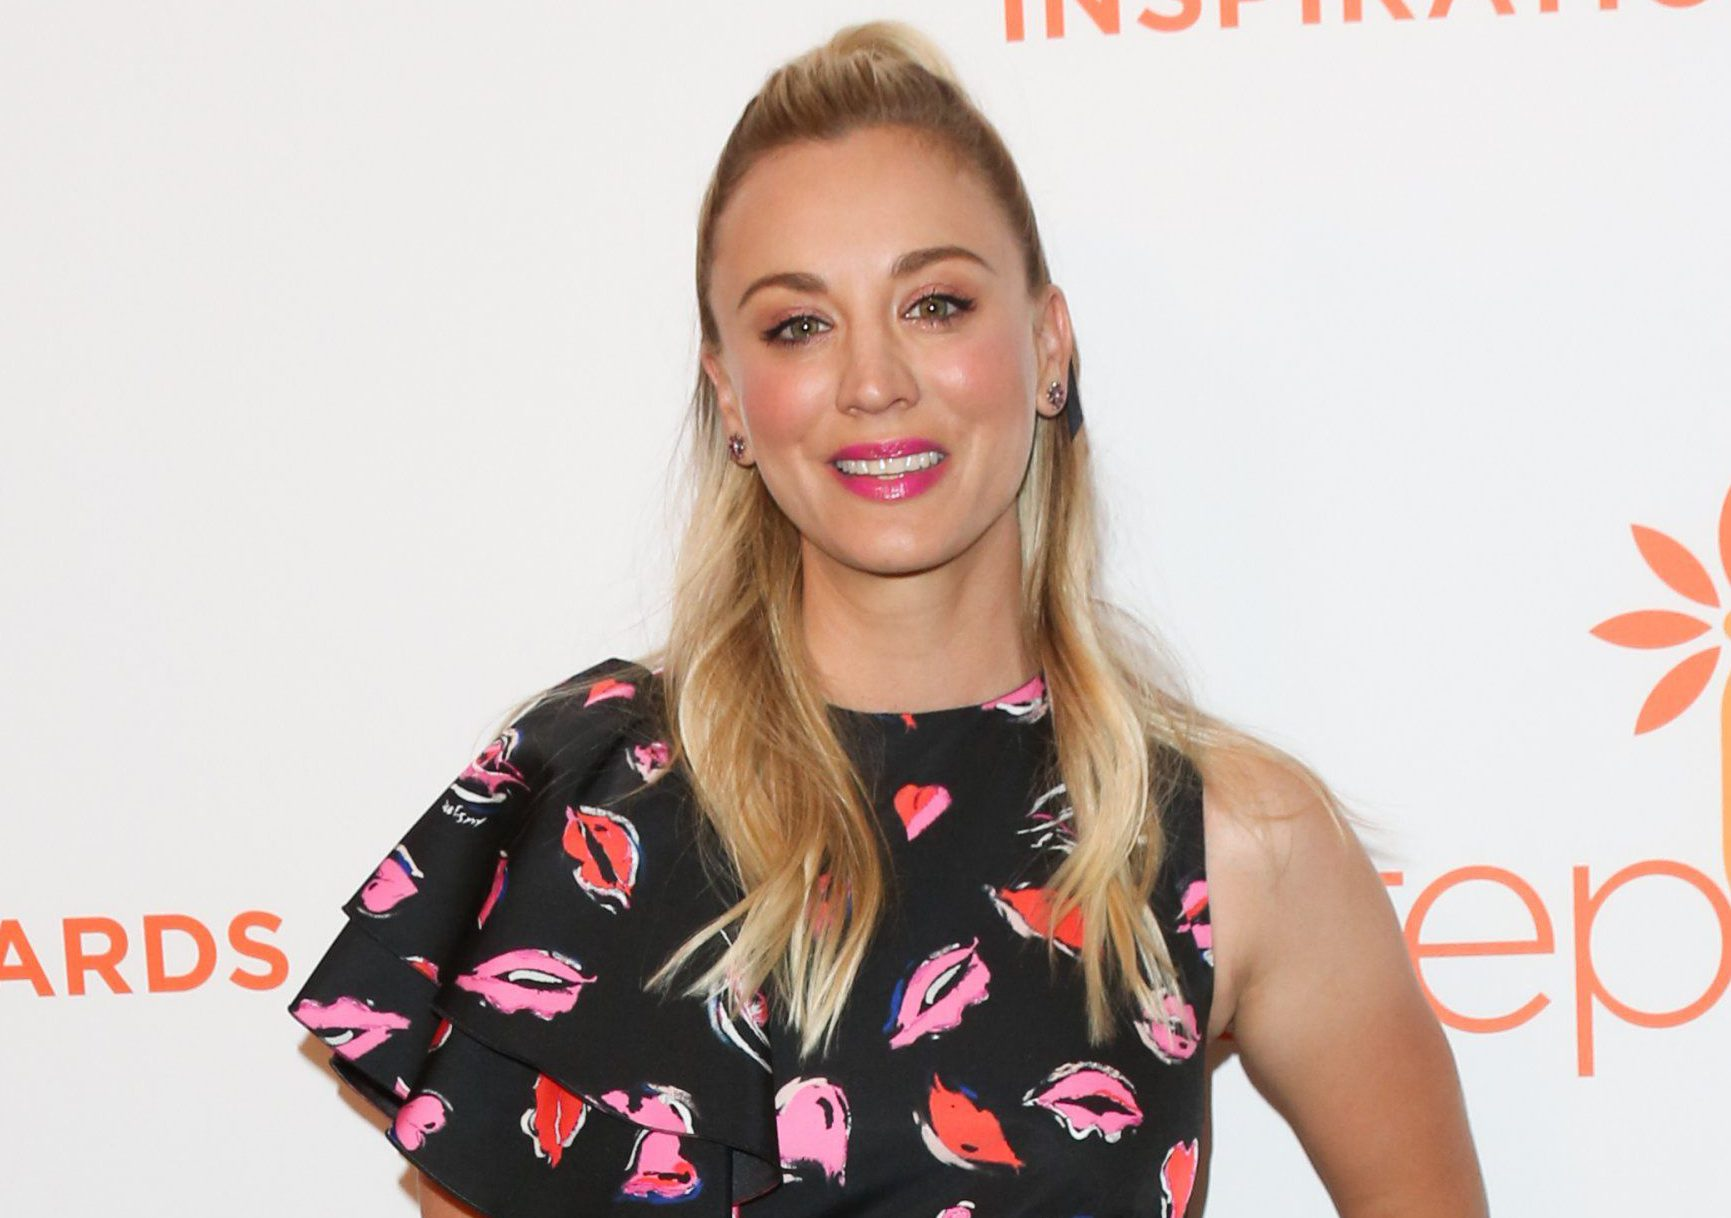 BEVERLY HILLS, CA - JUNE 01: Actress Kaley Cuoco attends Step Up's 14th Annual Inspiration Awards at the Beverly Wilshire Four Seasons Hotel on June 1, 2018 in Beverly Hills, California. (Photo by Paul Archuleta/FilmMagic)